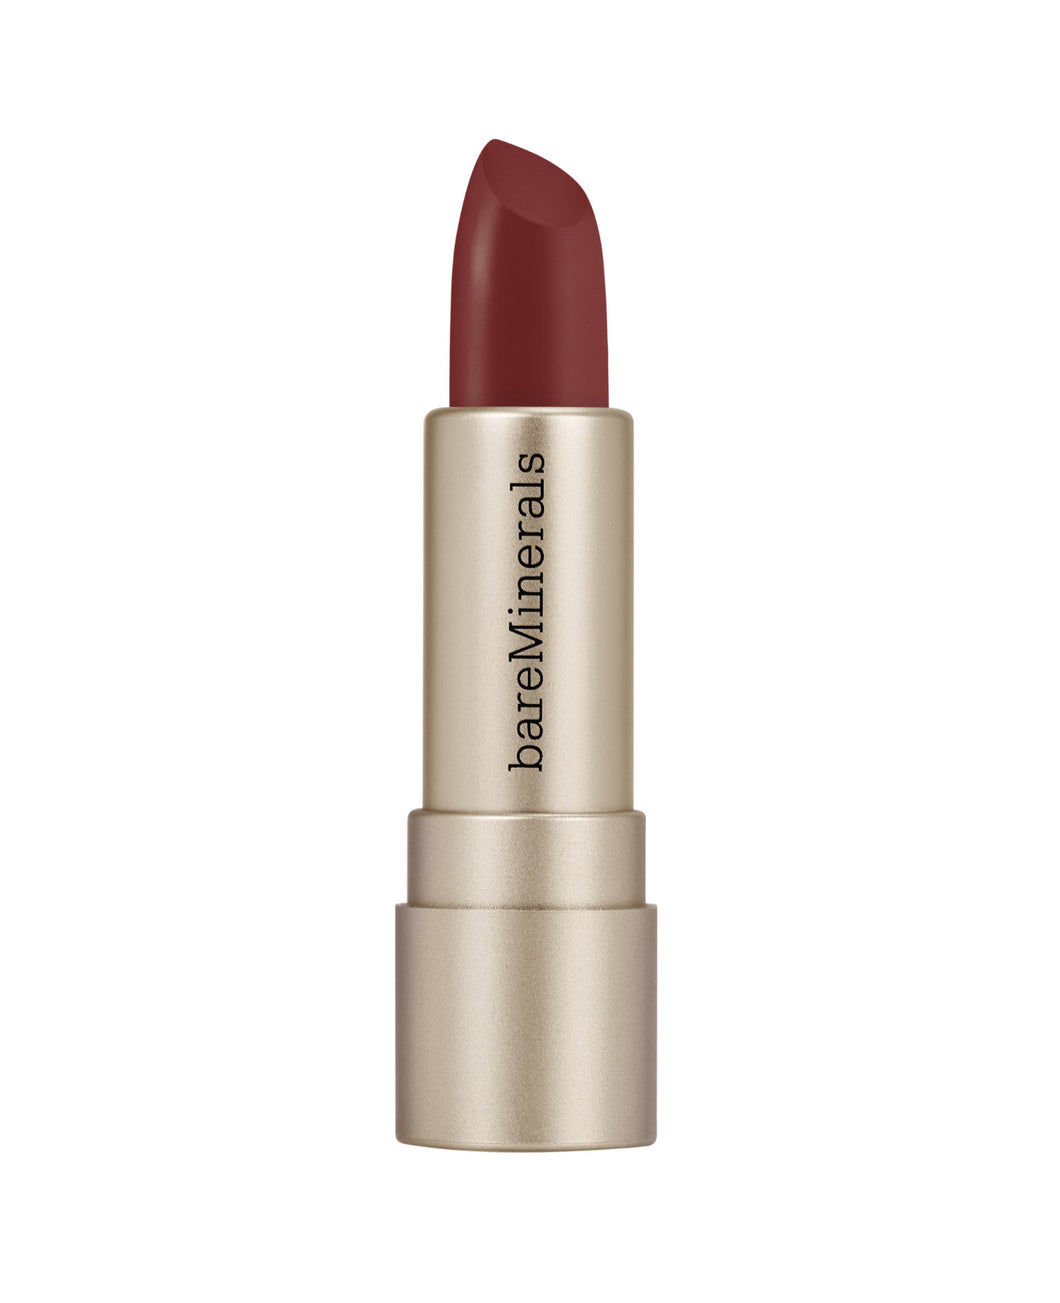 BARE MINERALS MINERALIST HYDRA-SMOOTHING LIPSTICK - The Vogue Boutique